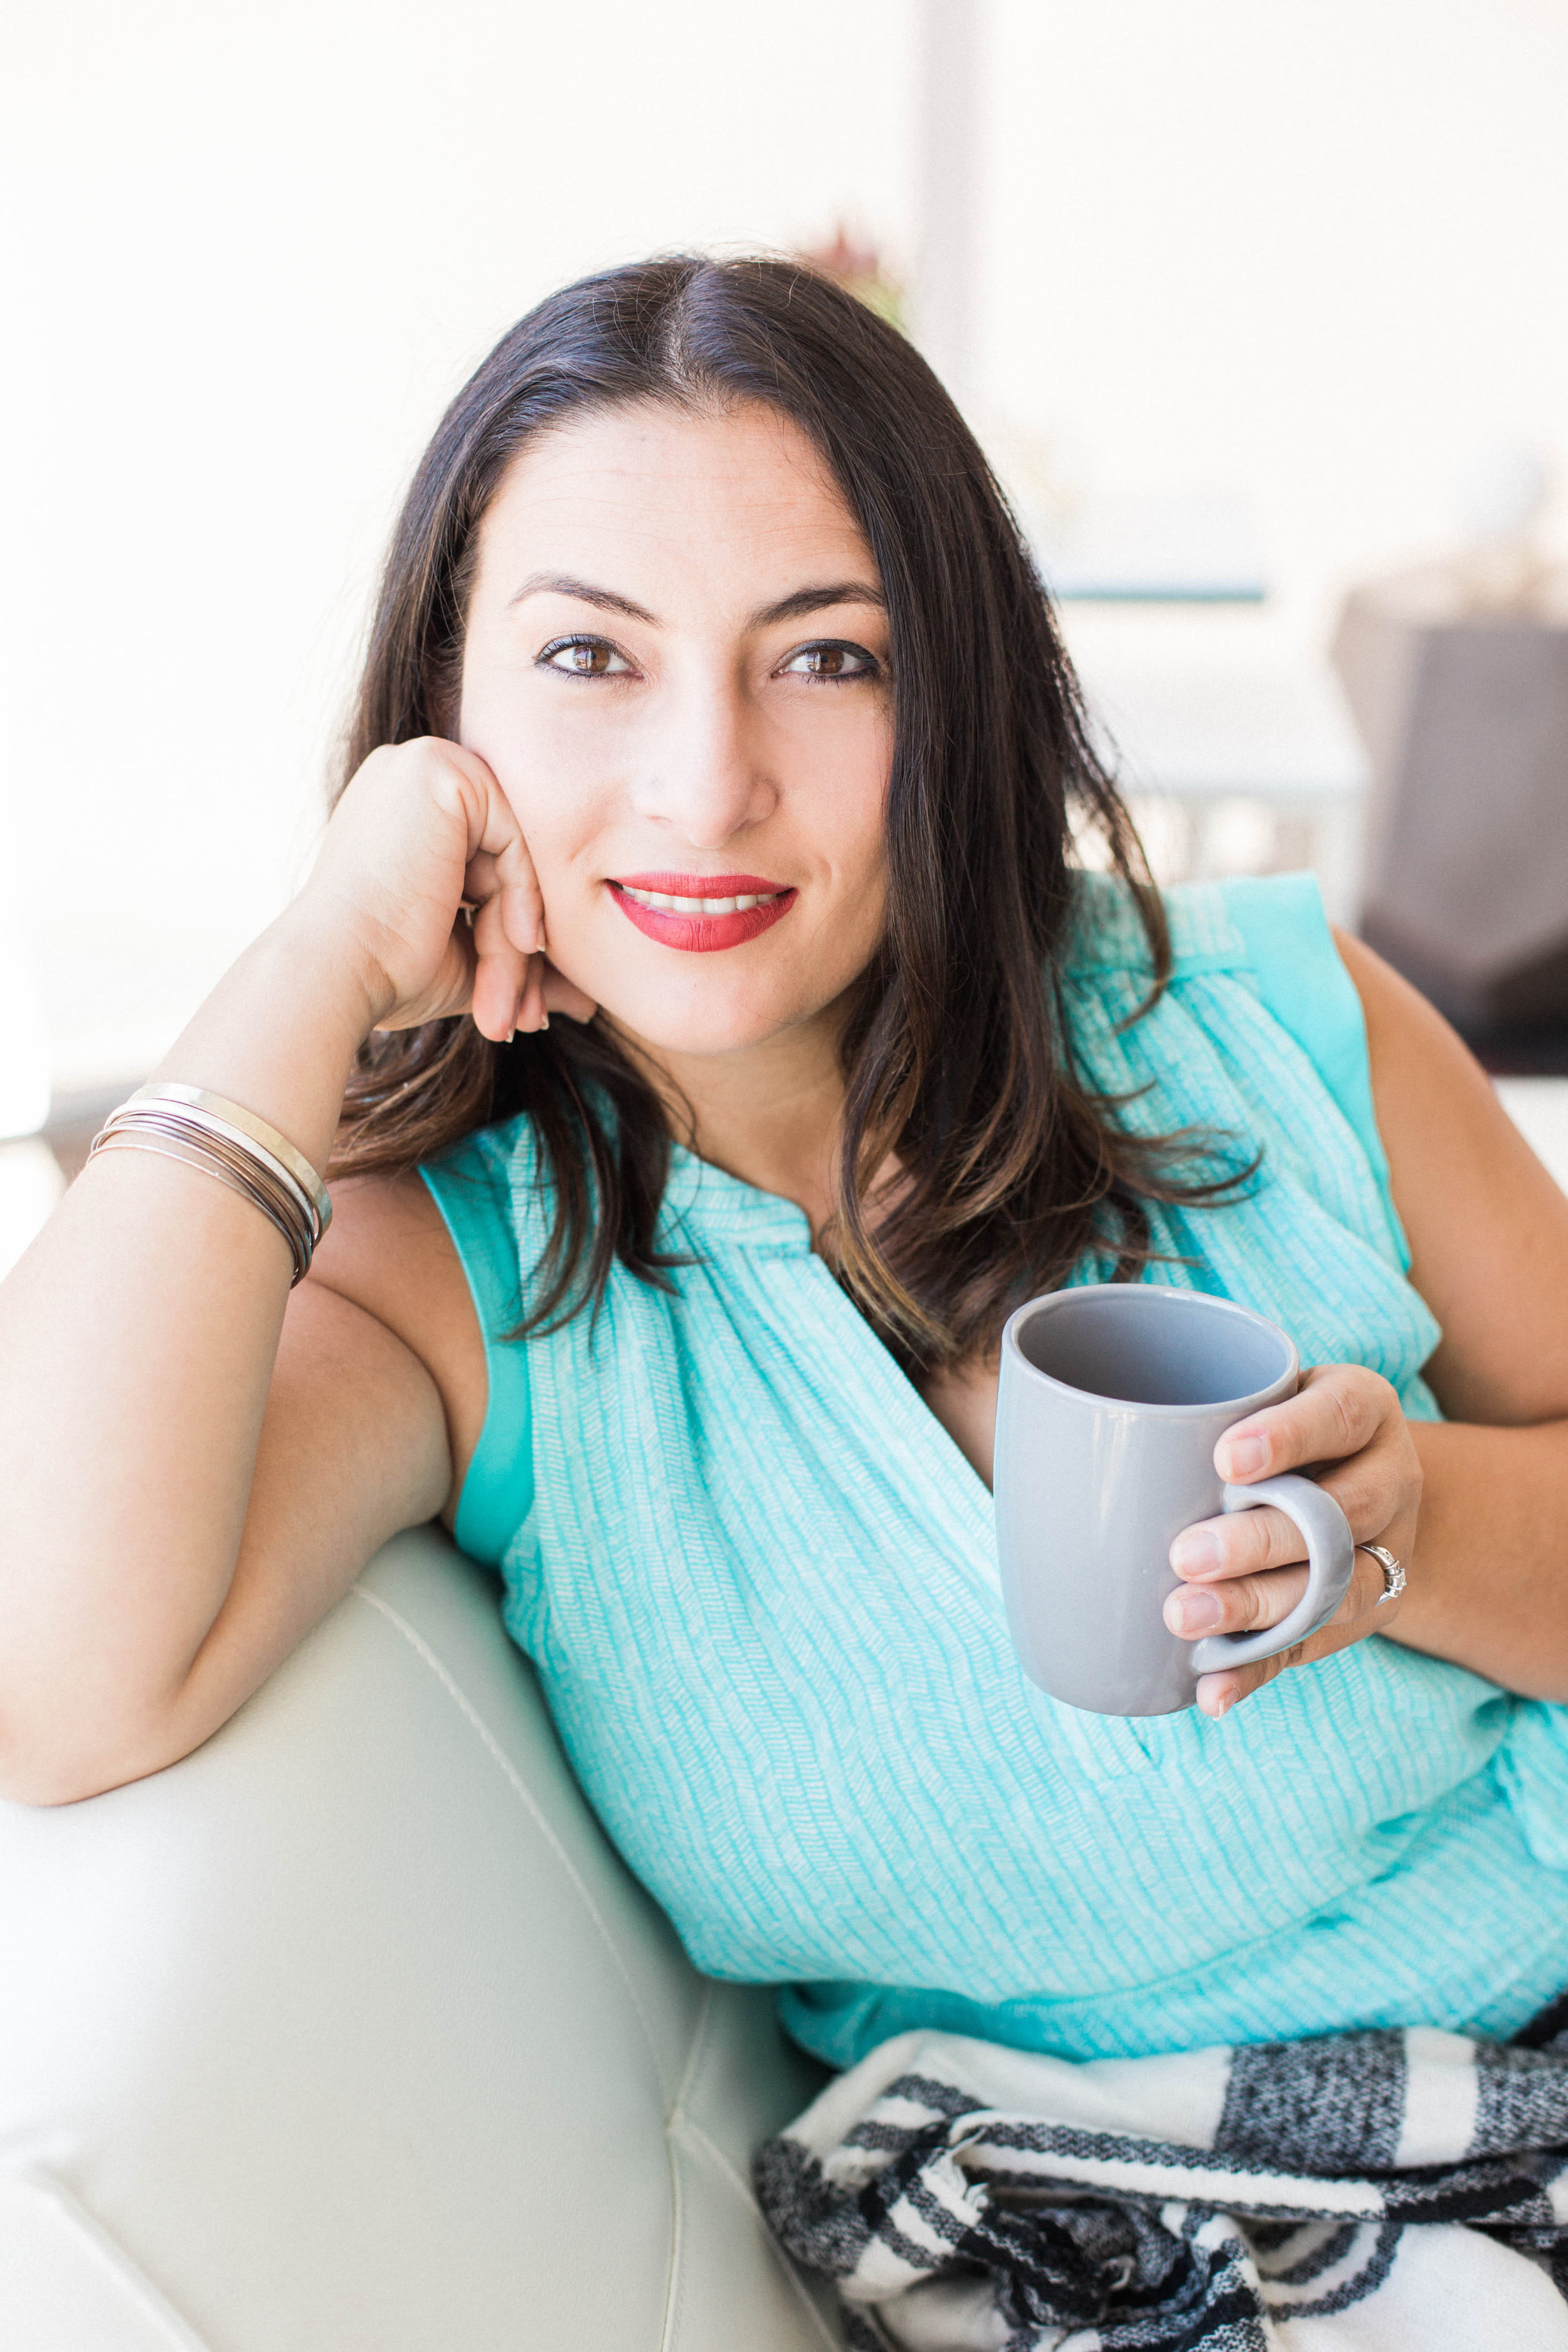 Maruxa Murphy is the founder of Perky Perky Coffee, which aims to invite women back into their power! She has 3 major loves in her life: Coffee, Conversation, and Community.